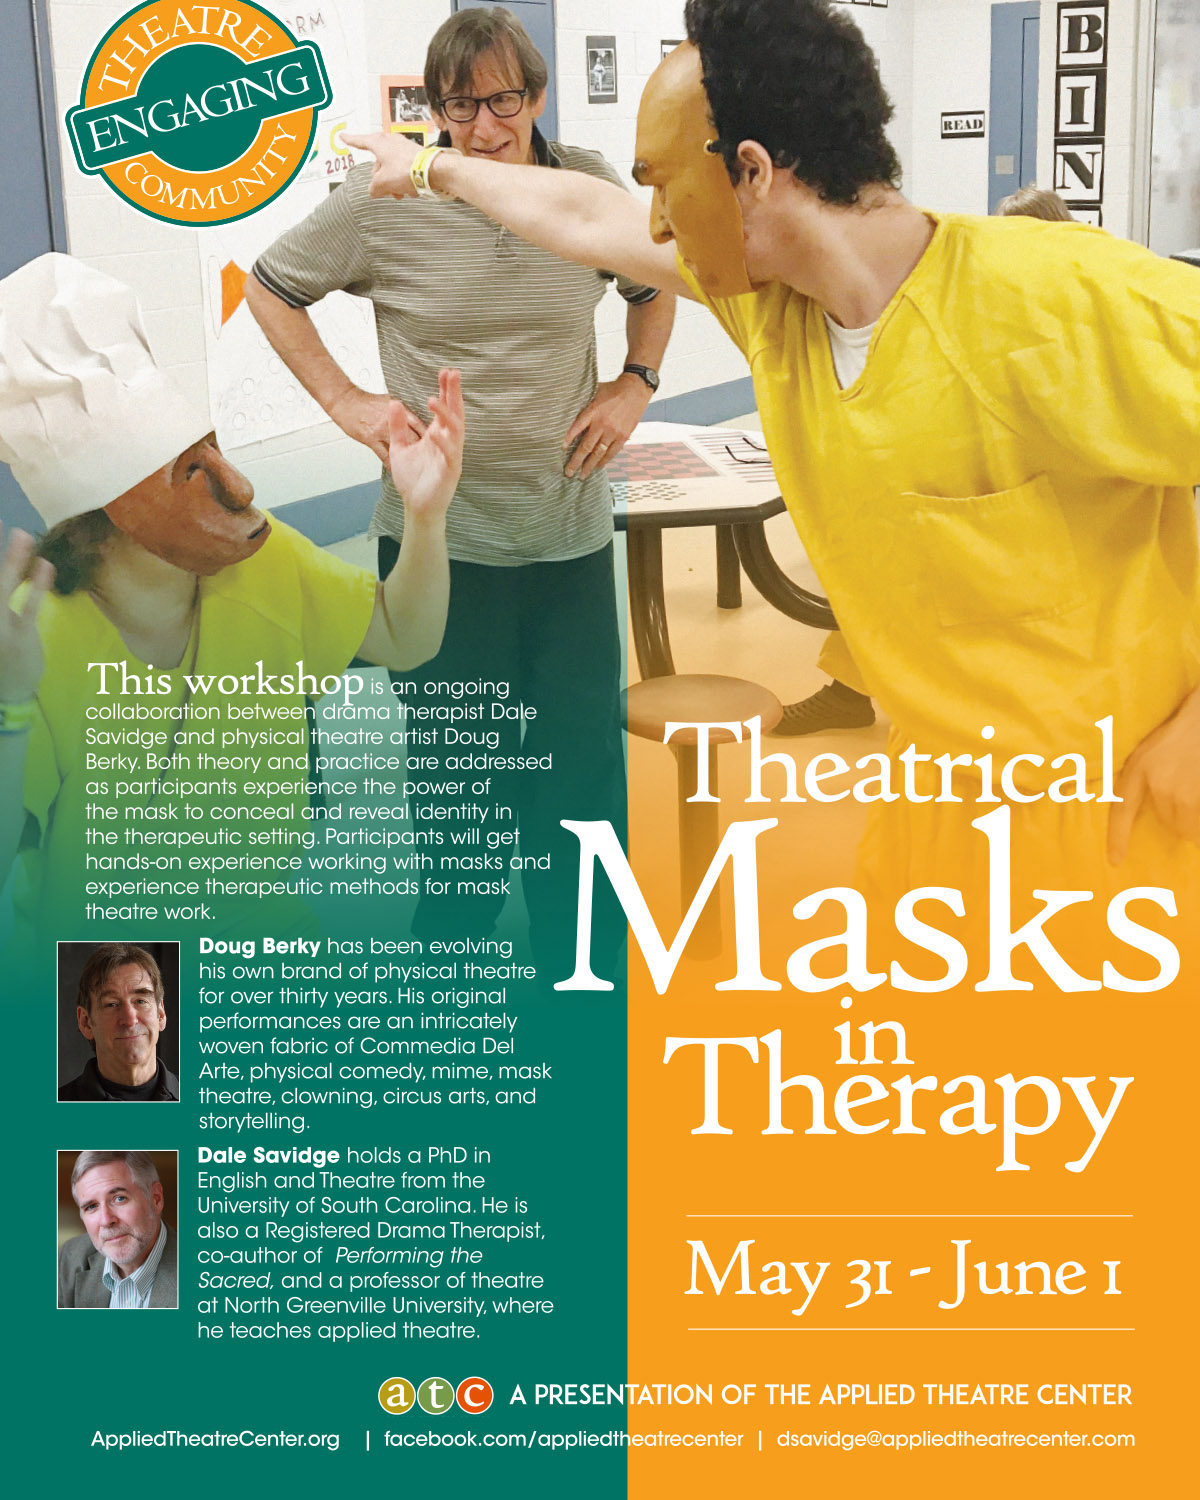 THEATRICAL MASKS IN THERAPY